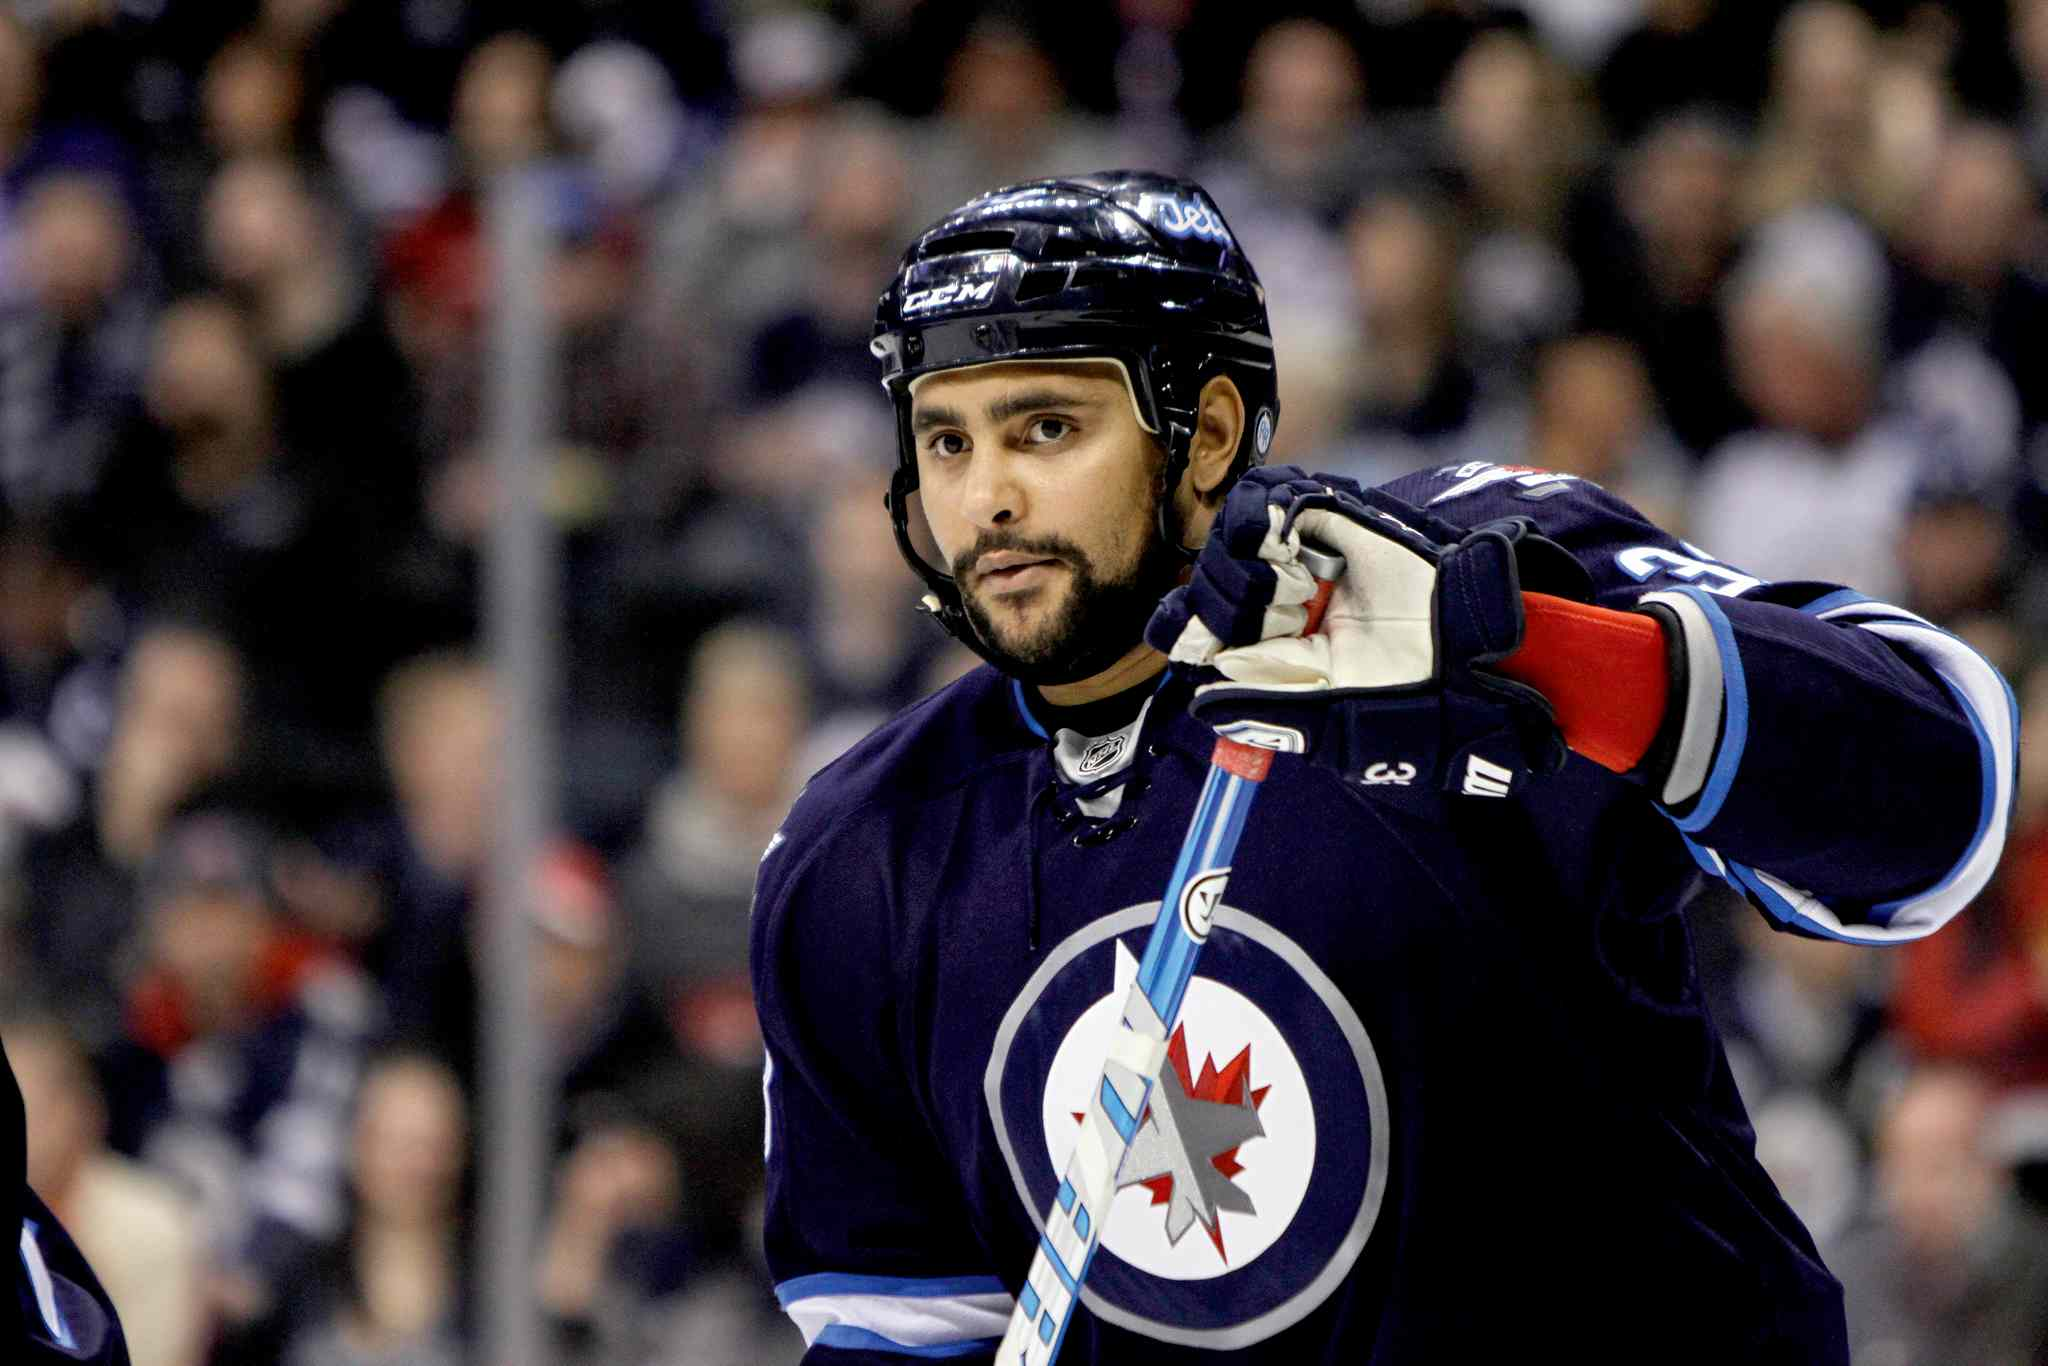 Last season at this time, defencemen accounted for nine goals and Dustin Byfuglien was among the top six